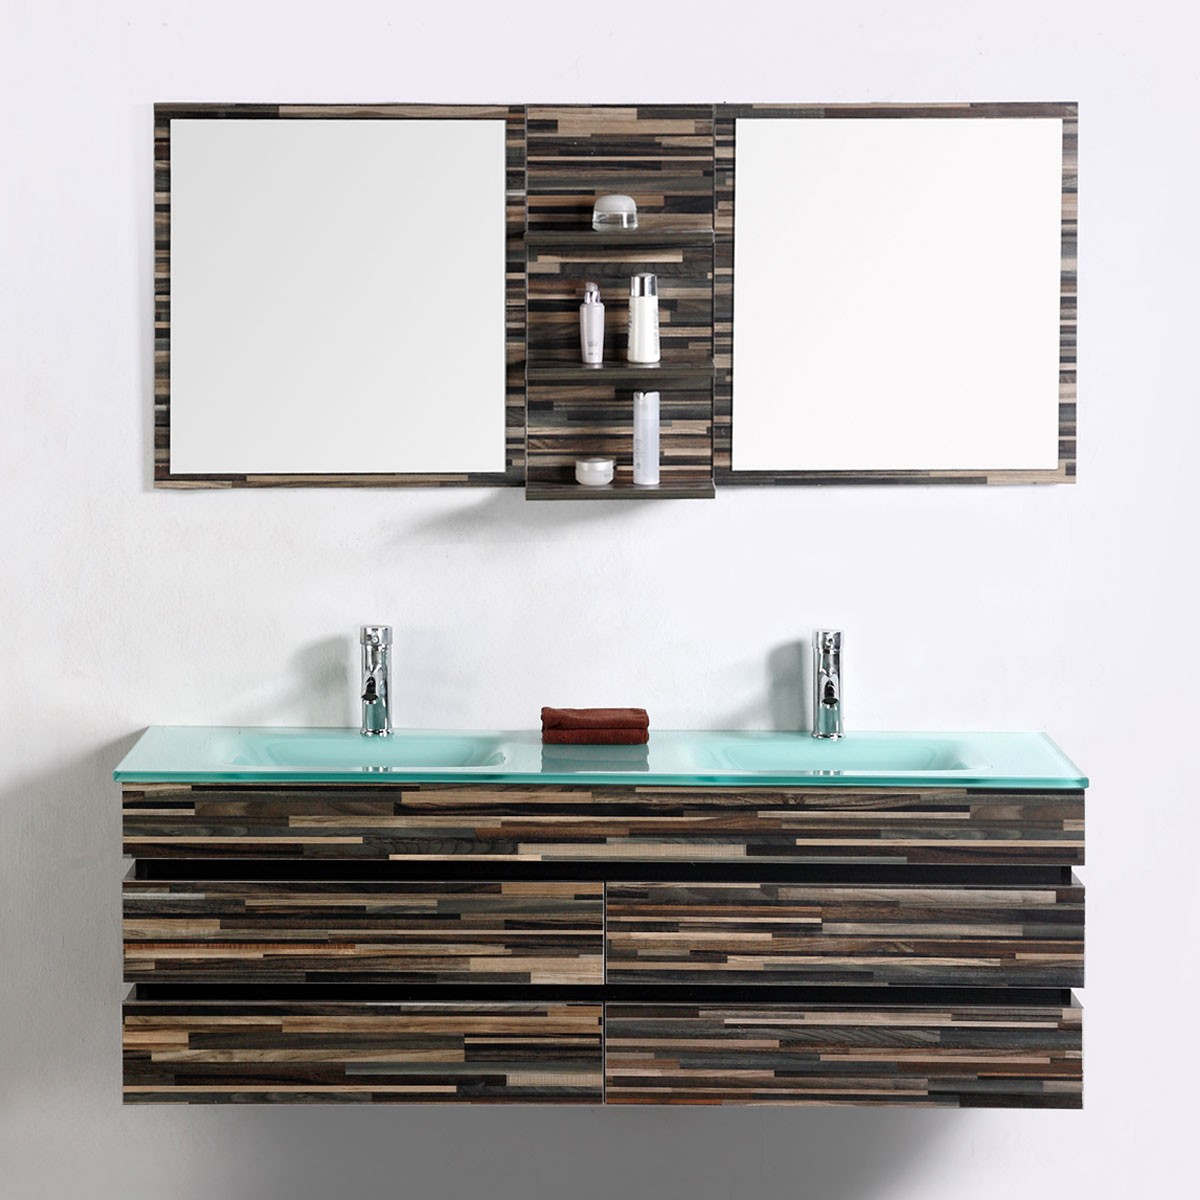 55 In. Wall Mount Bathroom Vanity Set With Double Glass Sink and Mirror (VS-8861)